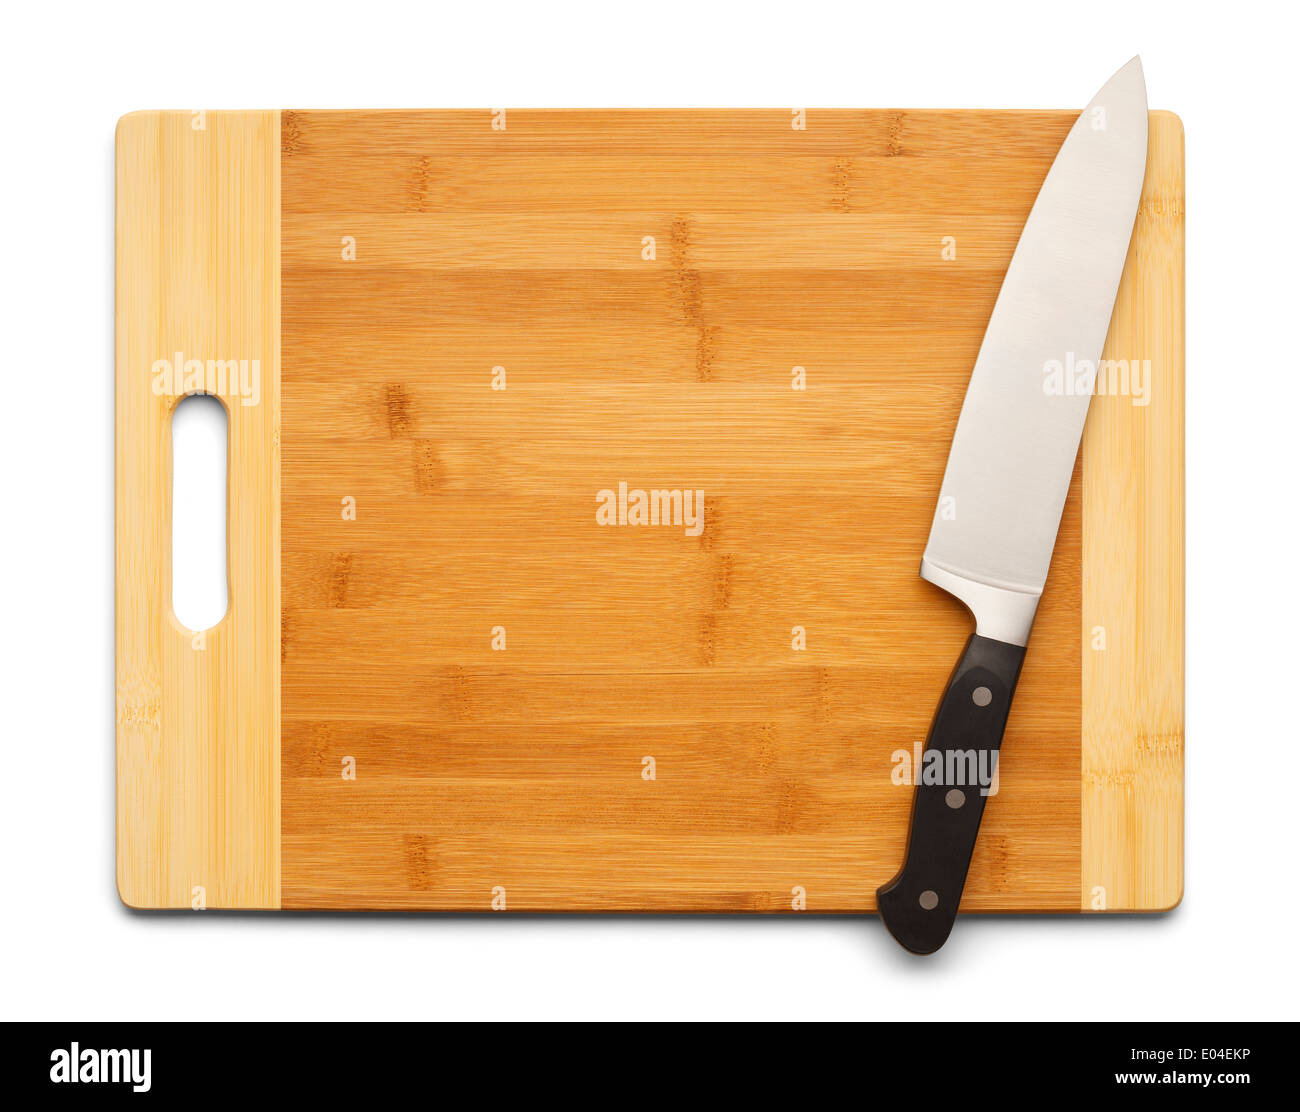 Bamboo Cutting Board with Kitchen Knife Isolated on White Background. - Stock Image